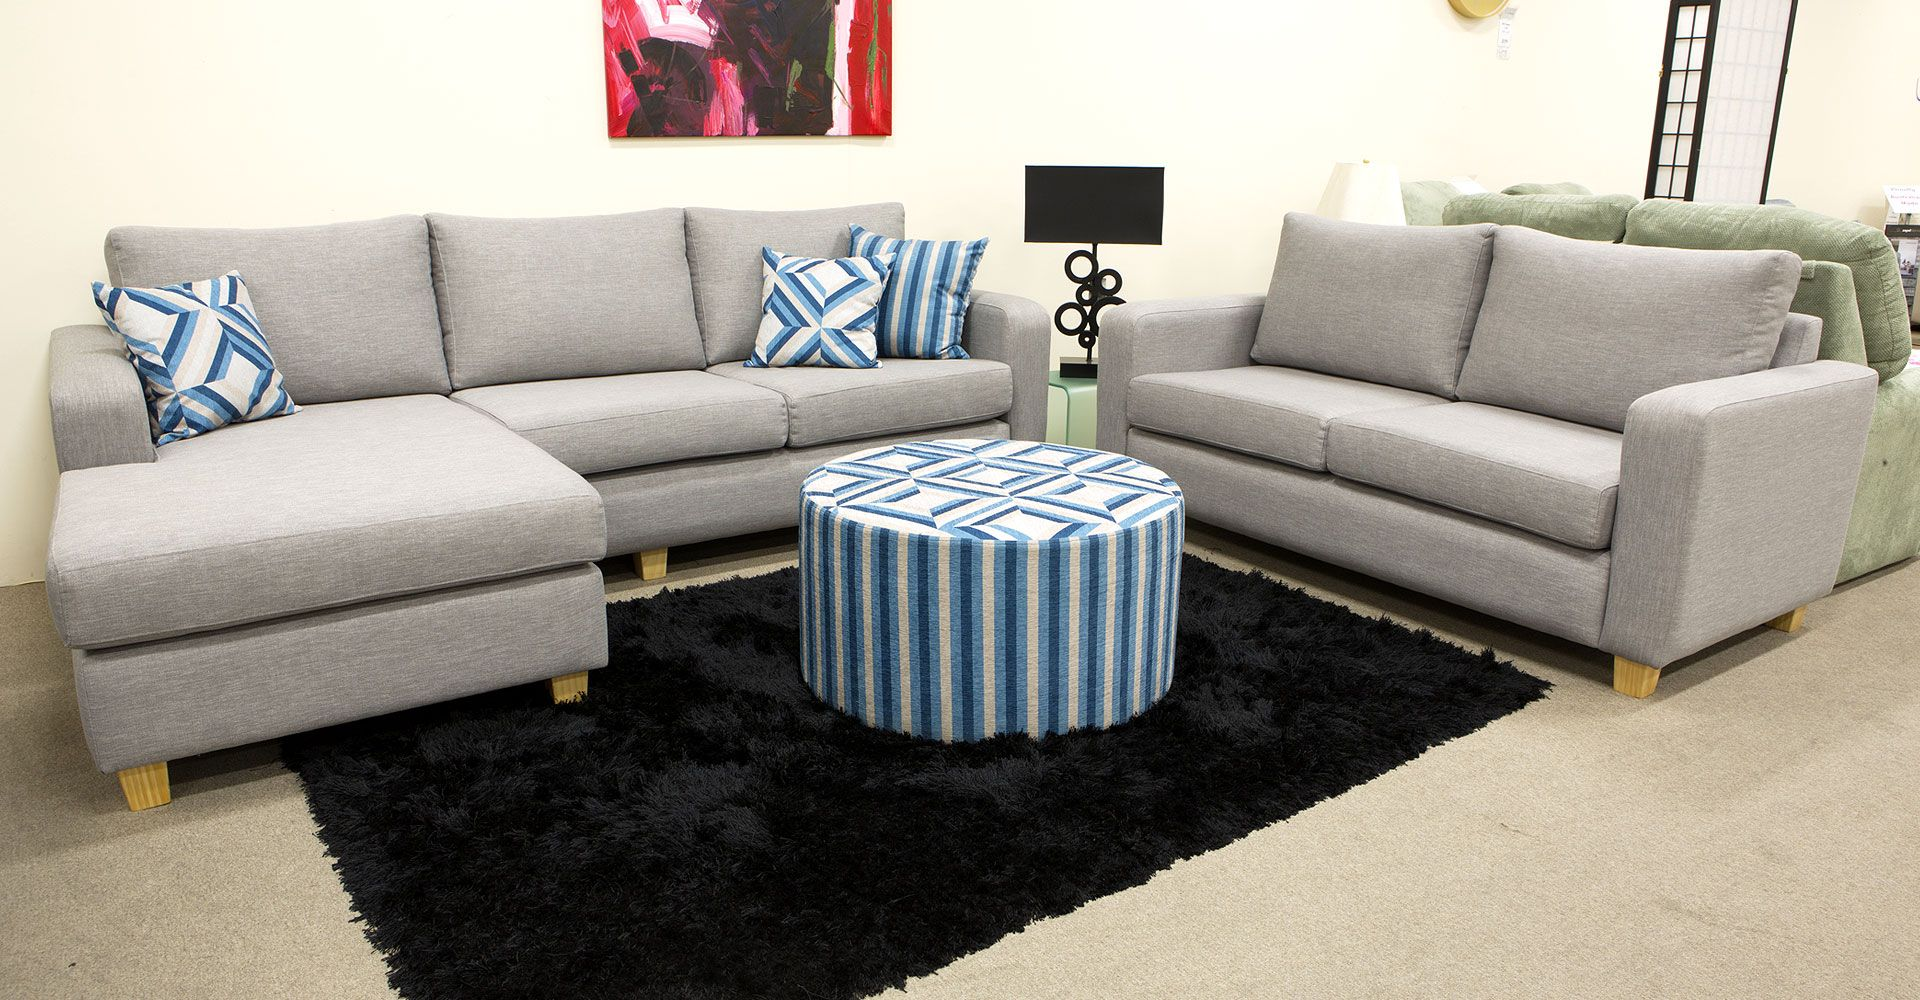 Cheap Modular Lounges Looking For Sofa Shop In Adelaide Sa Lounge Suites Offers High